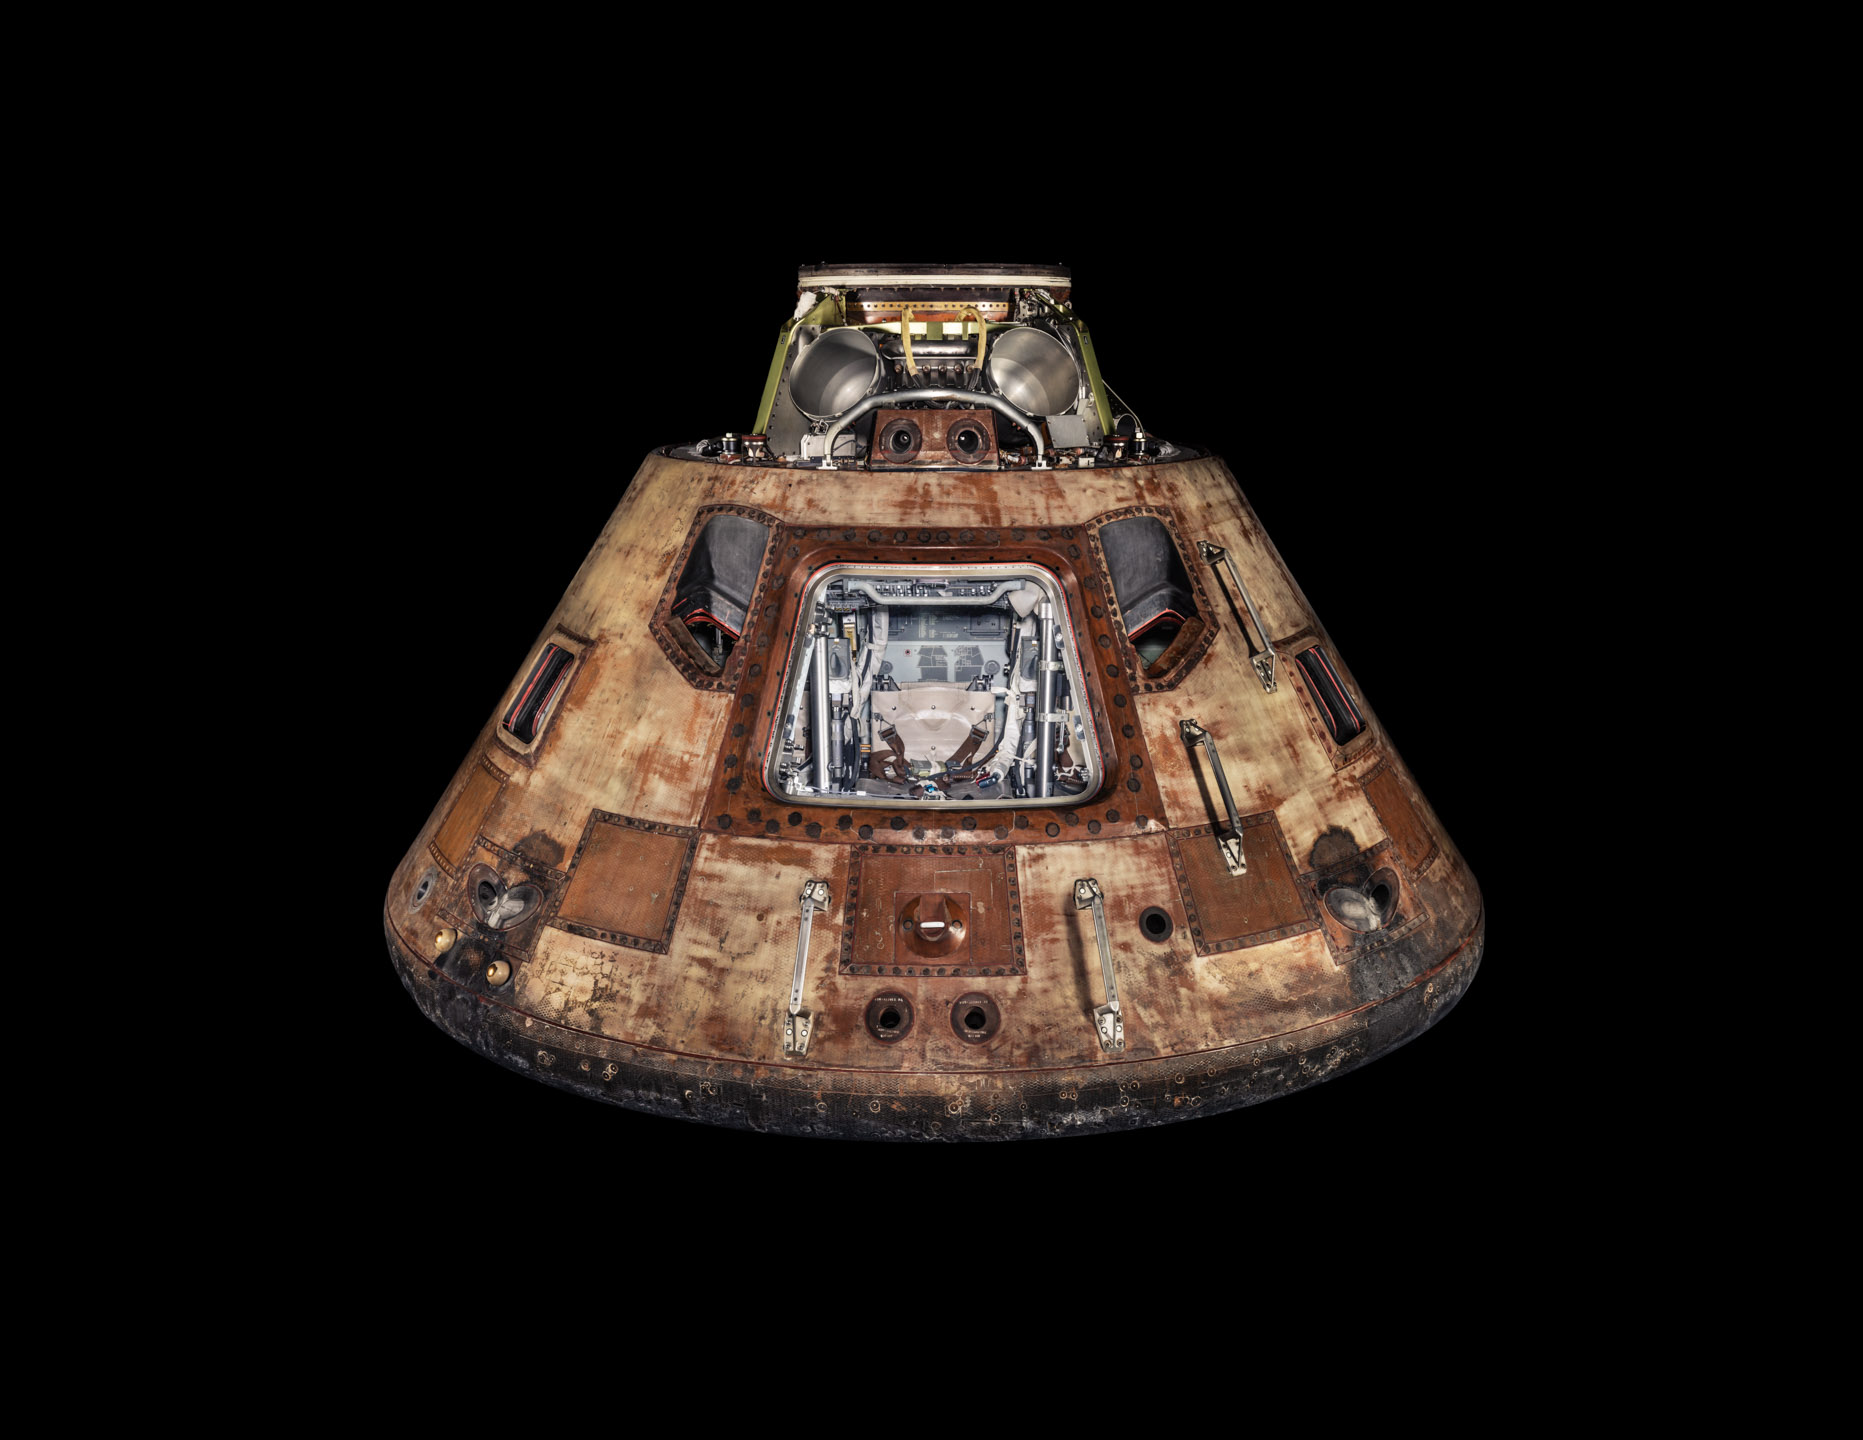 Winters_Nat_Geo_Apollo_11_Command_Module_Capsule_2967